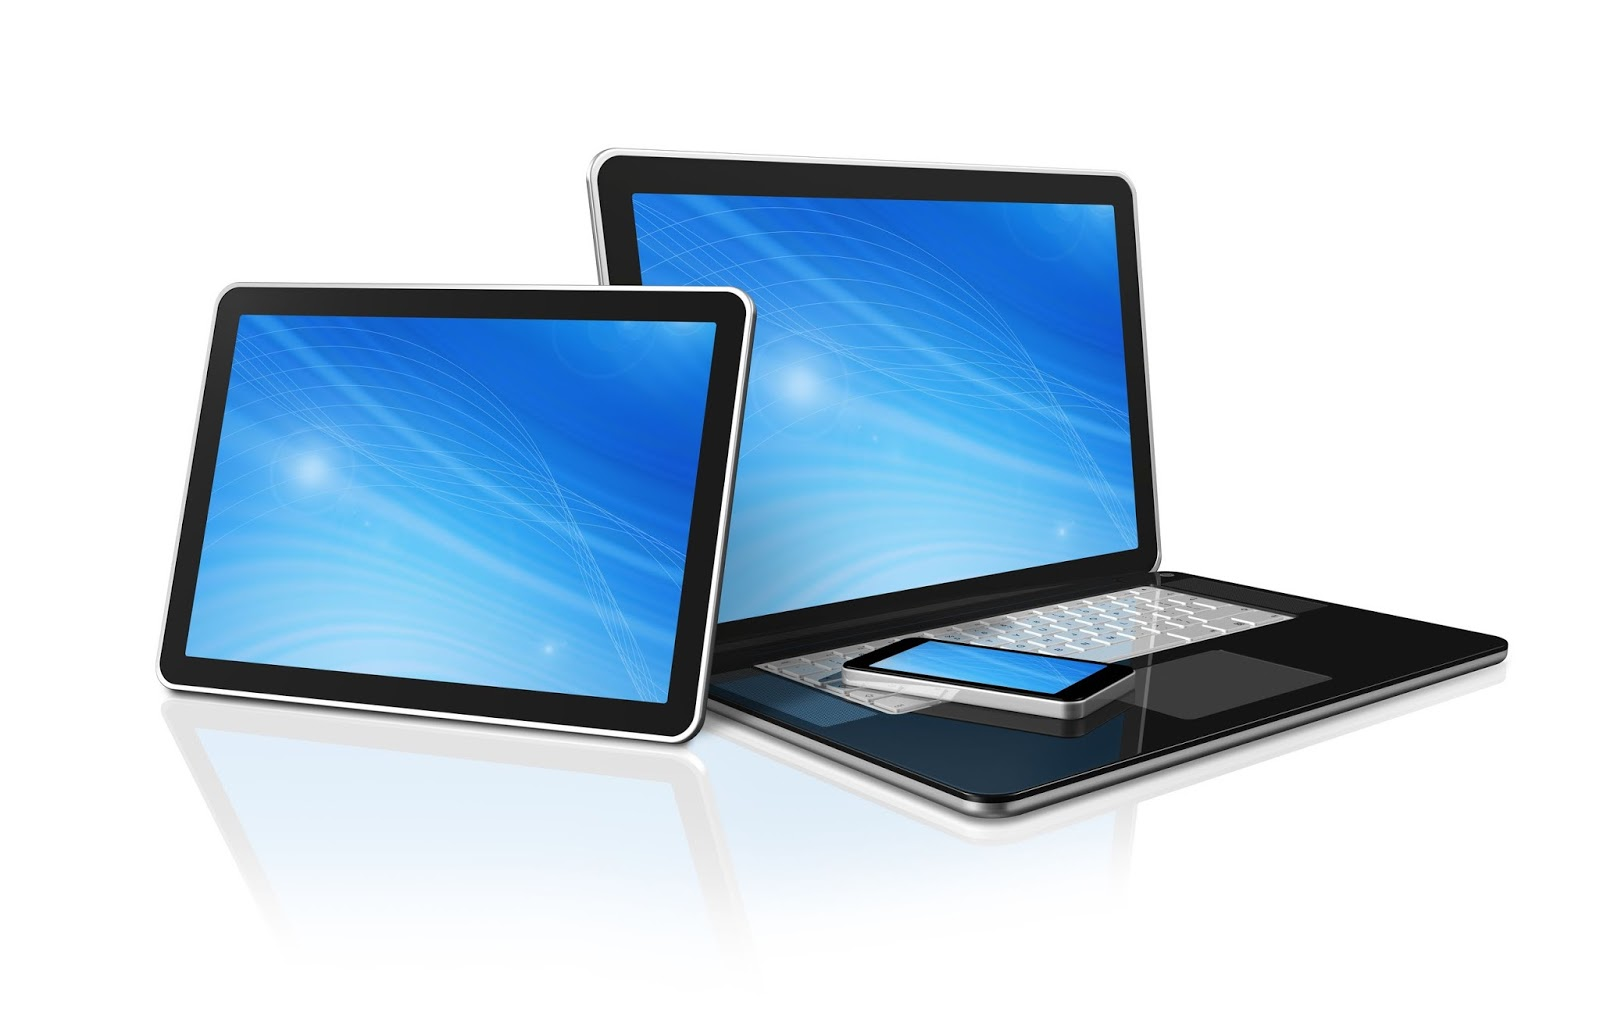 comparison essay between laptops and desktops The size is the most noticeable difference between a laptop and desktop computer this is the single biggest differentiator between laptops and desktops.